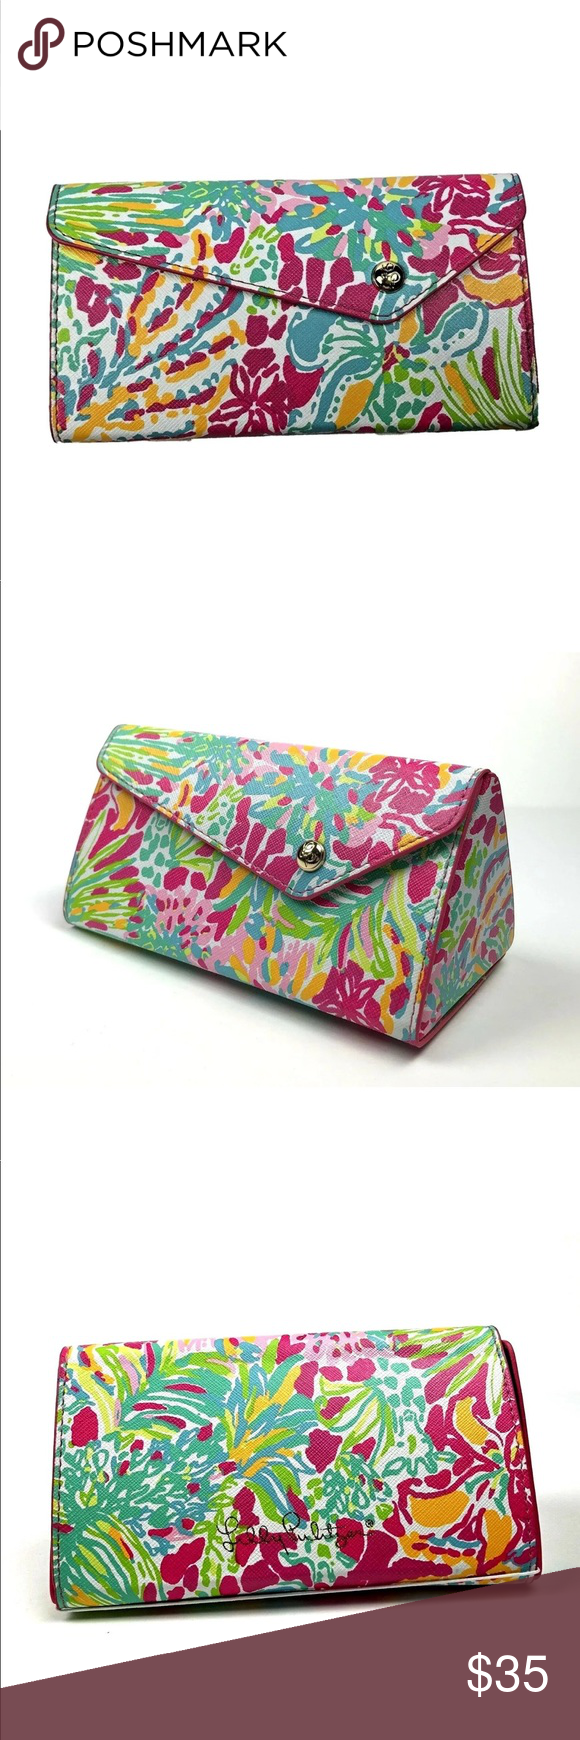 514a3fa8a3 LILLY PULITZER SUNGLASS CASE SPOT YA Collapsible LILLY PULITZER SUNGLASS  CASE SPOT YA Collapsible Compact .